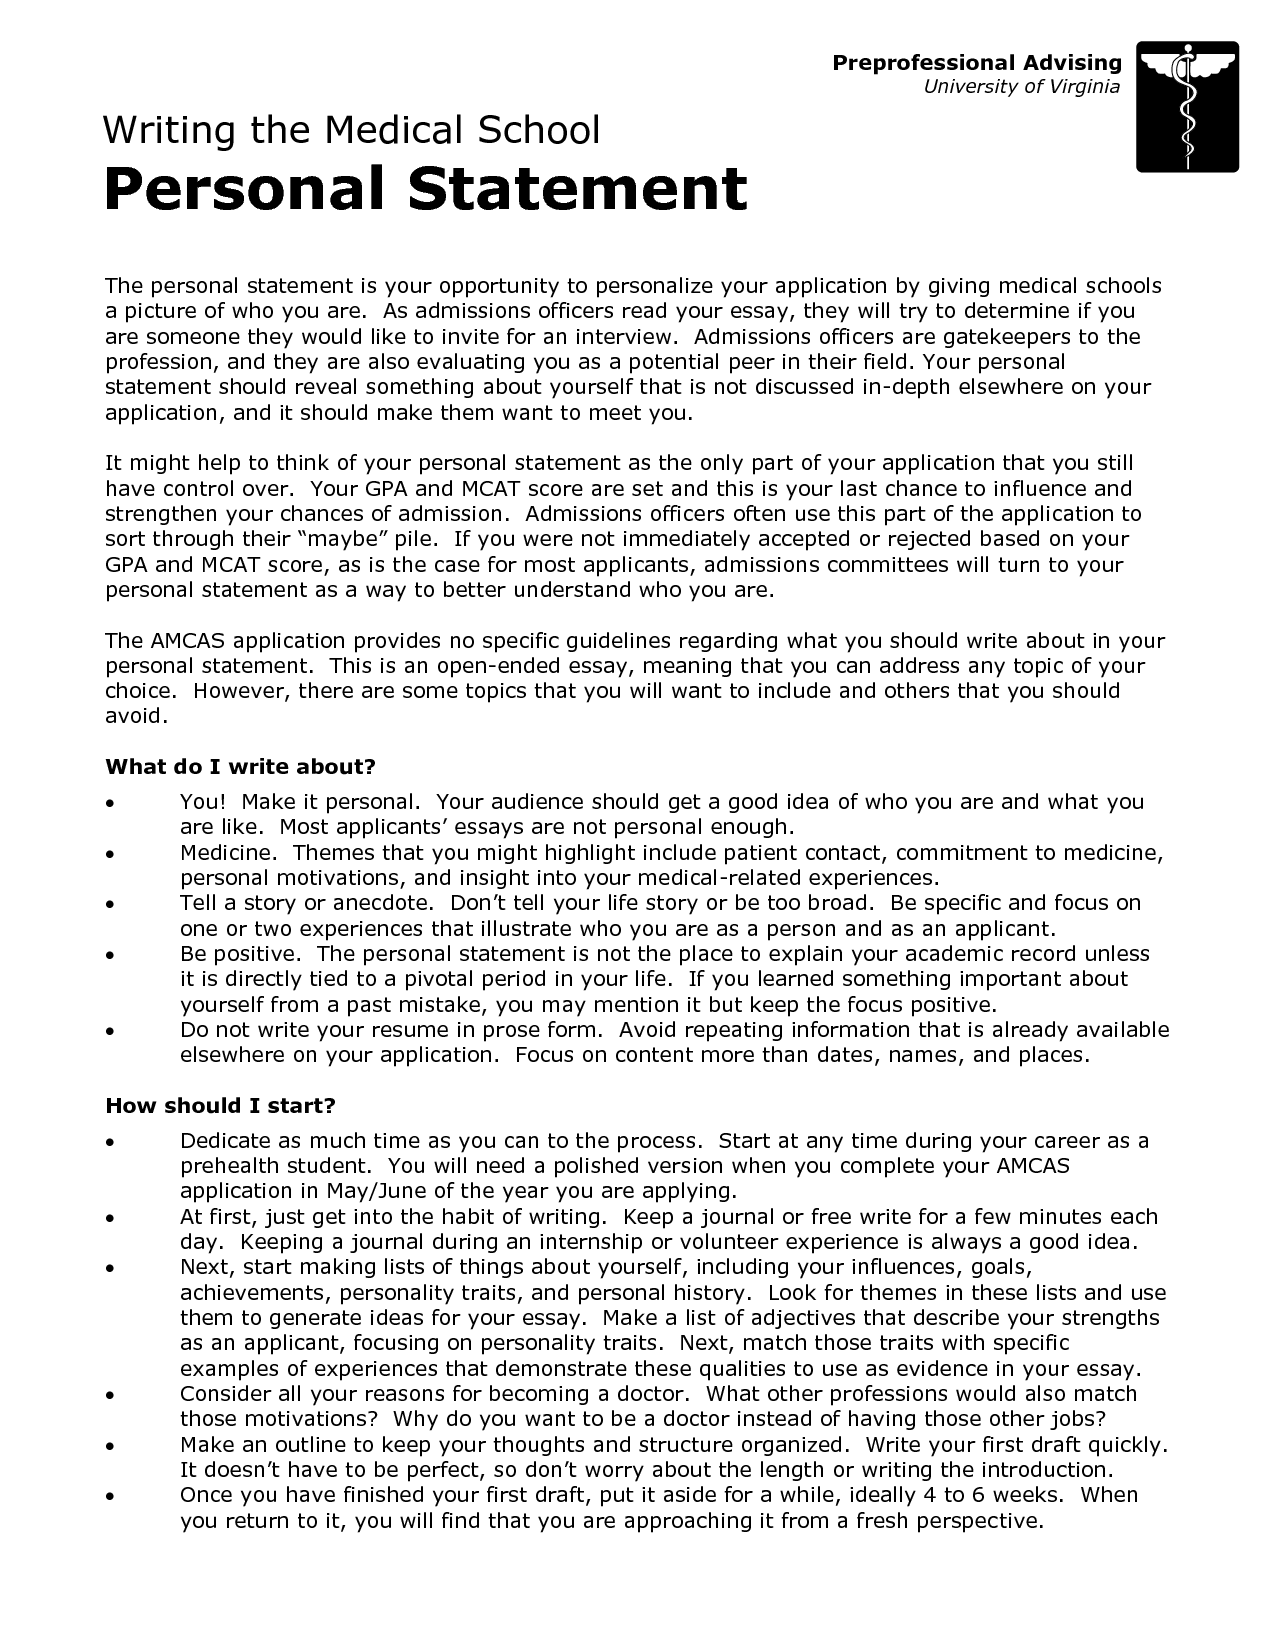 What Is the Difference Between an Essay & a Personal Statement?